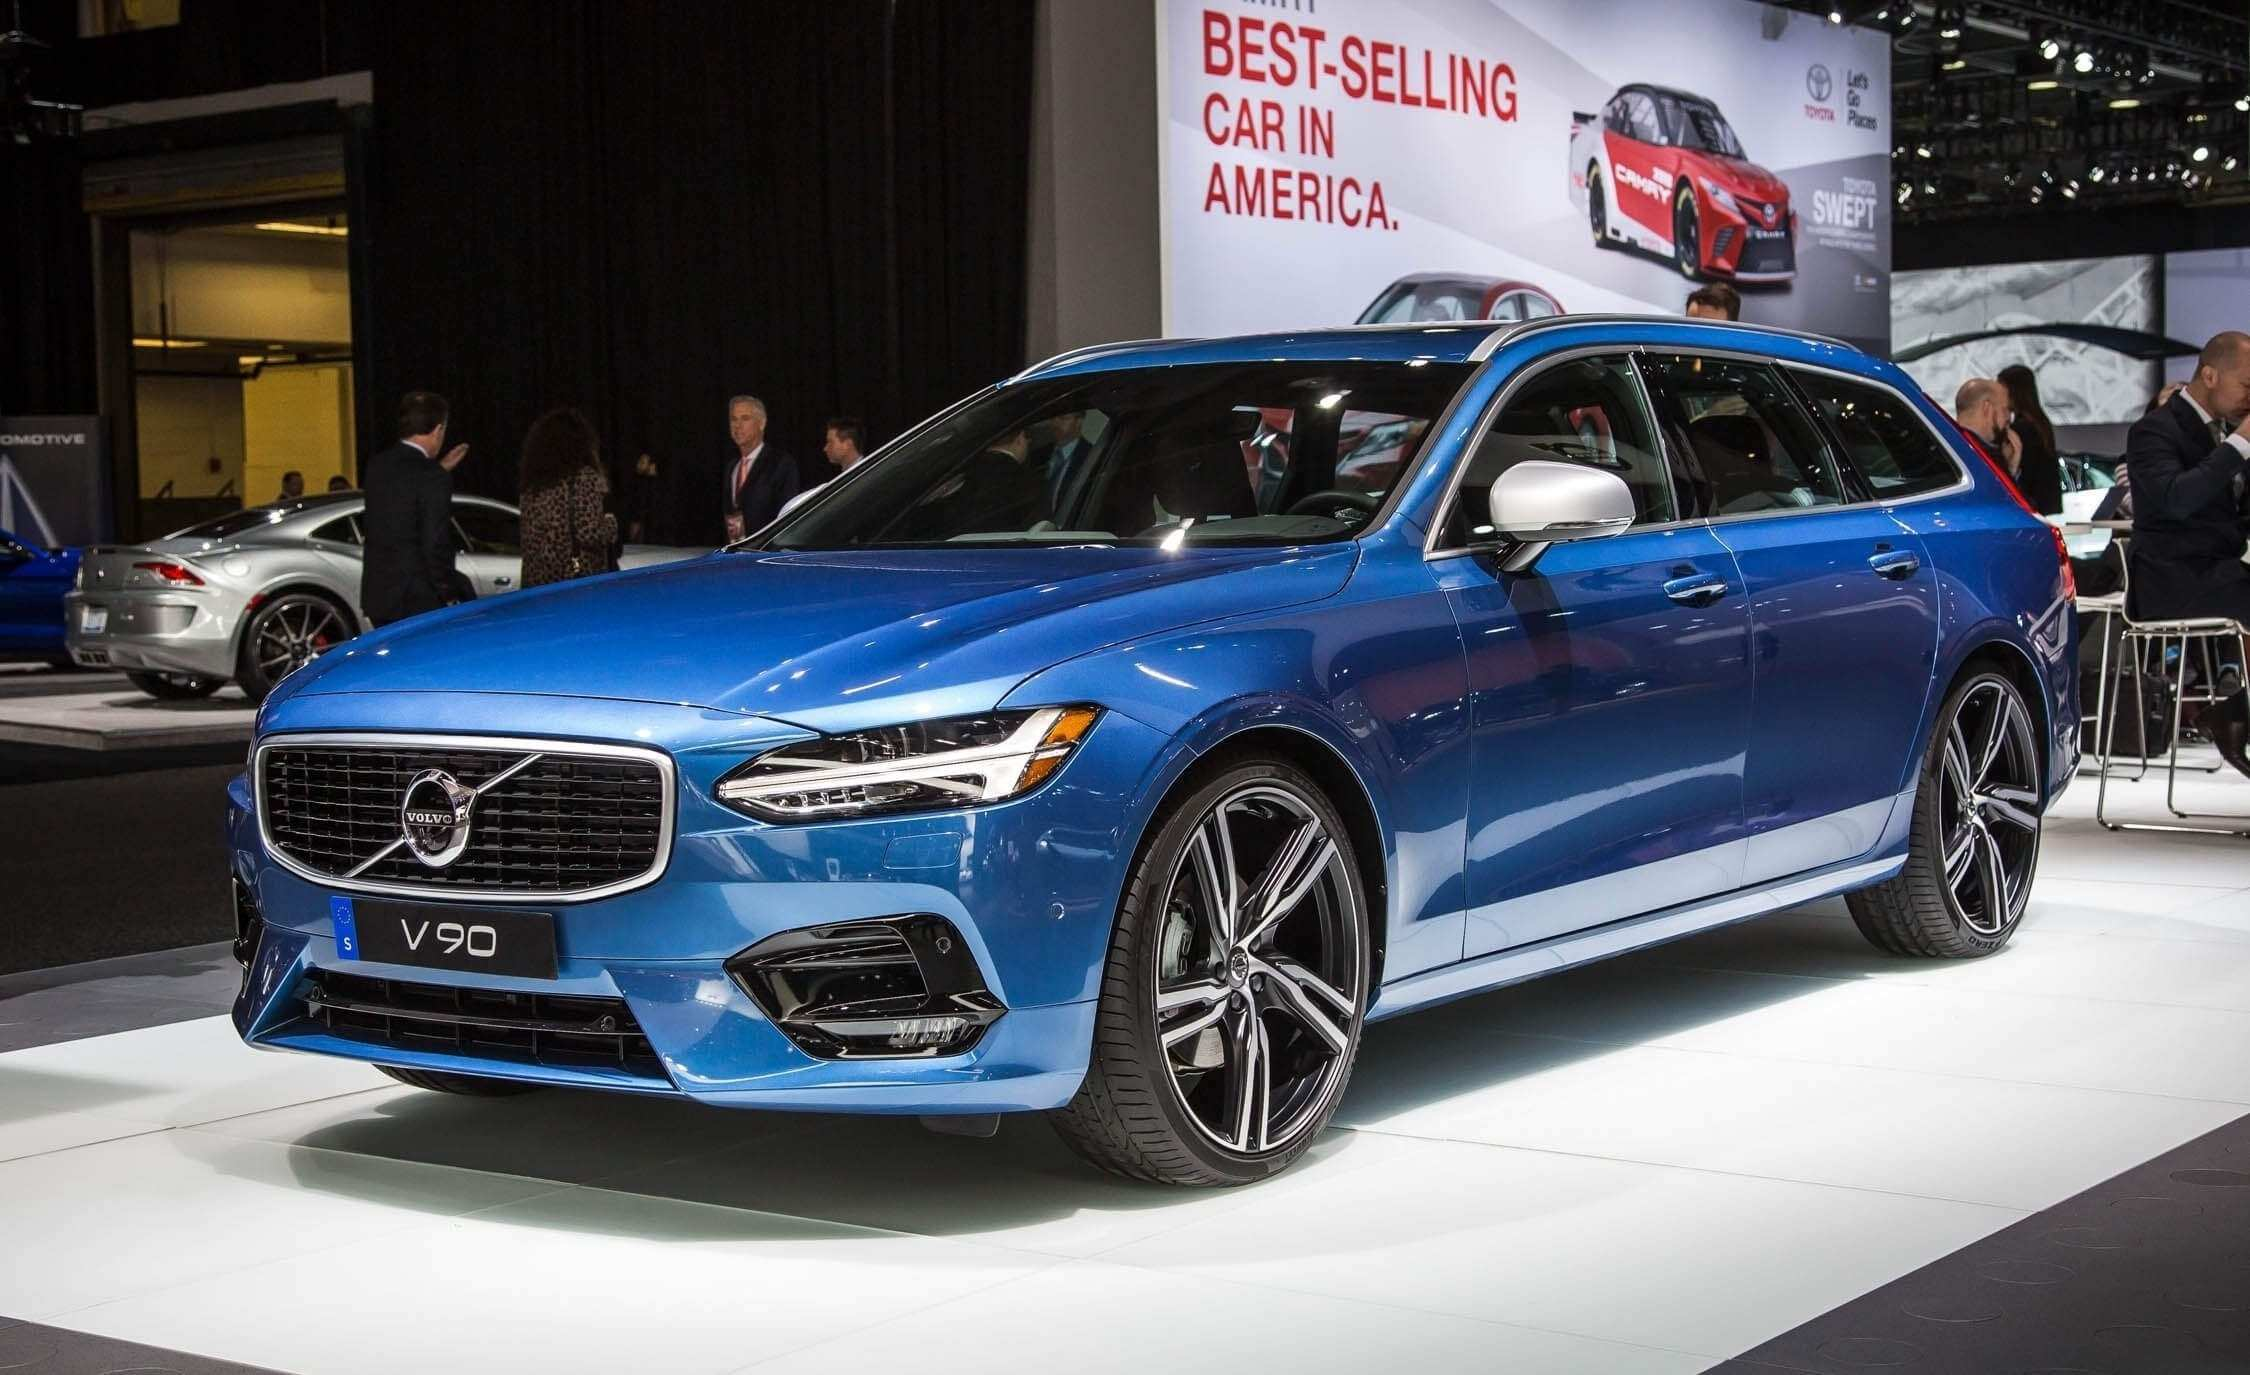 75 Best Review 2020 Volvo Xc70 New Generation Wagon Pricing for 2020 Volvo Xc70 New Generation Wagon